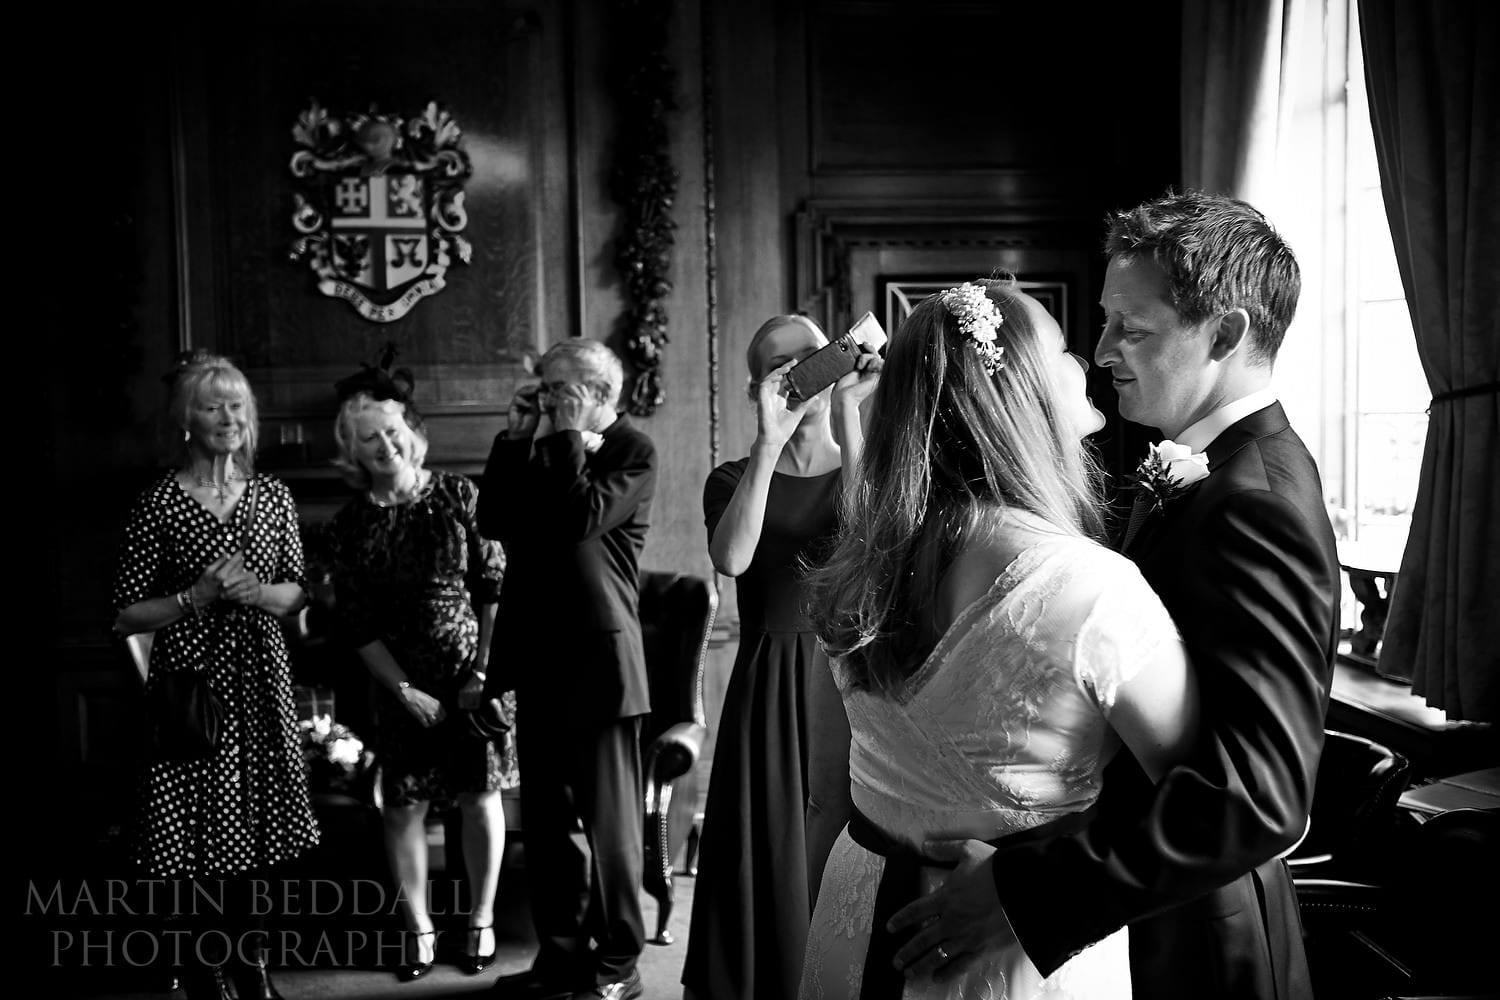 After the wedding ceremony at the Mayor's Parlour at Islington Town Hall